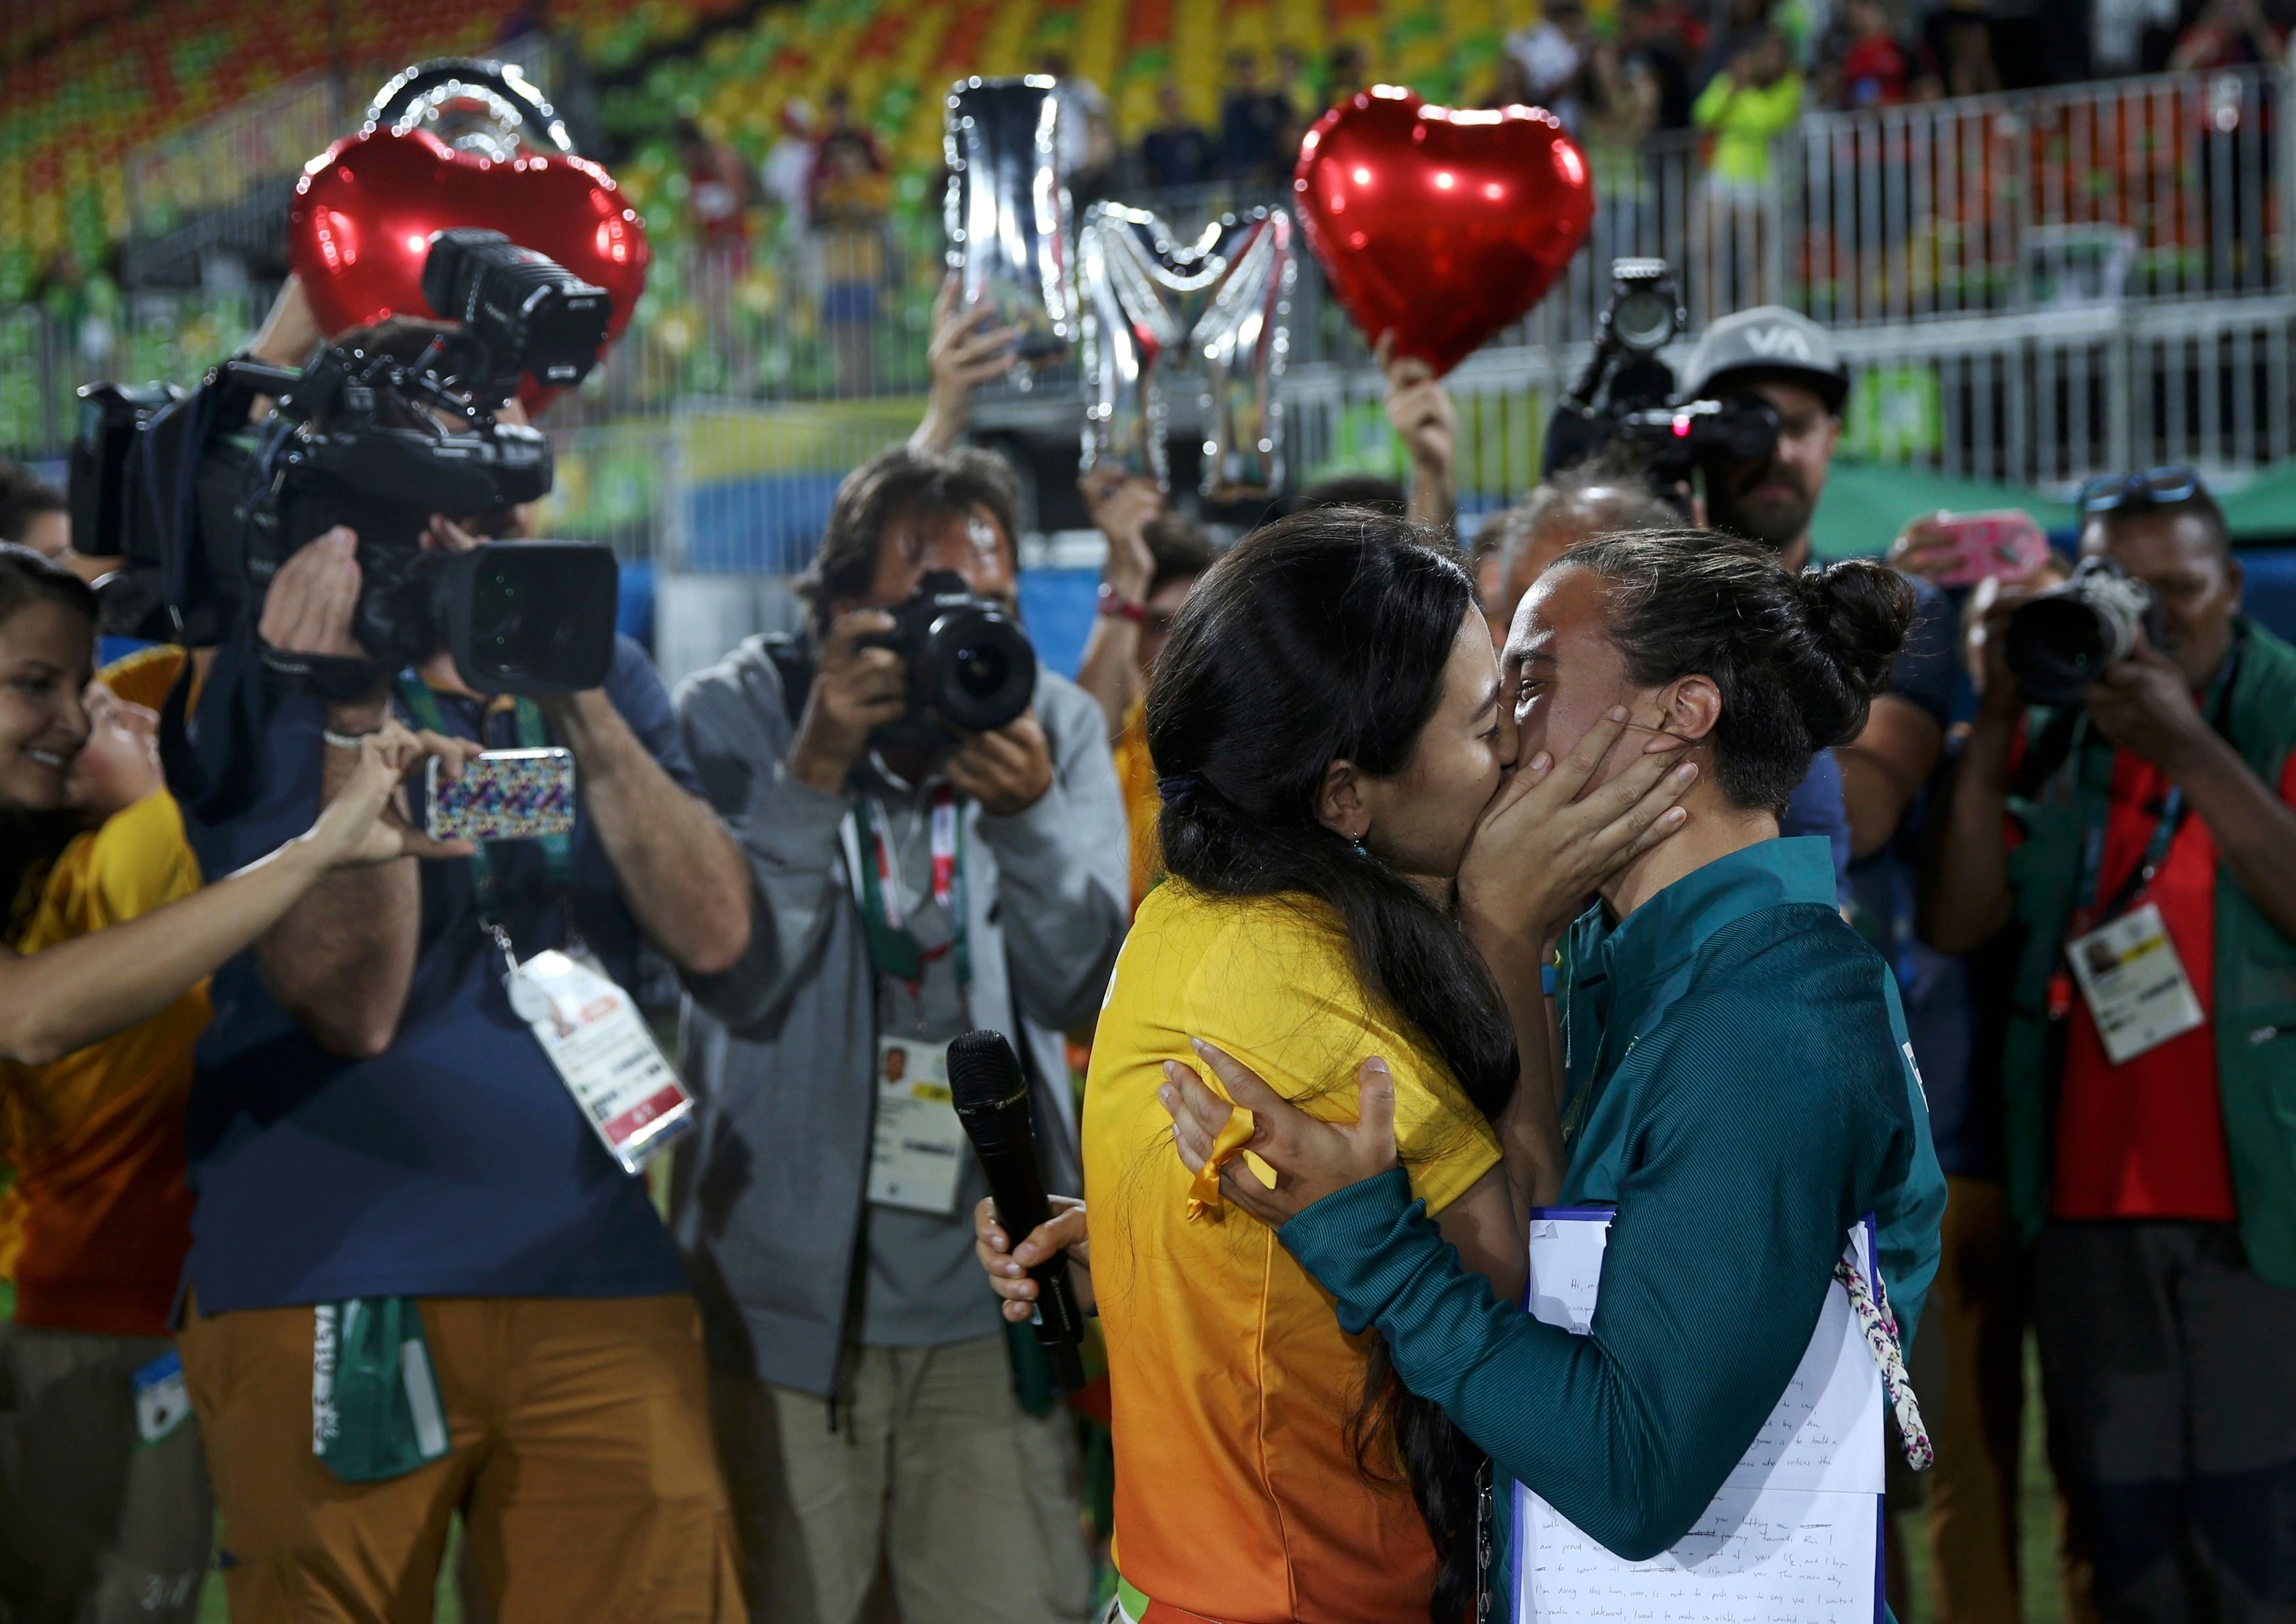 This Engagement At Rio Olympics Reminds Us All That Love